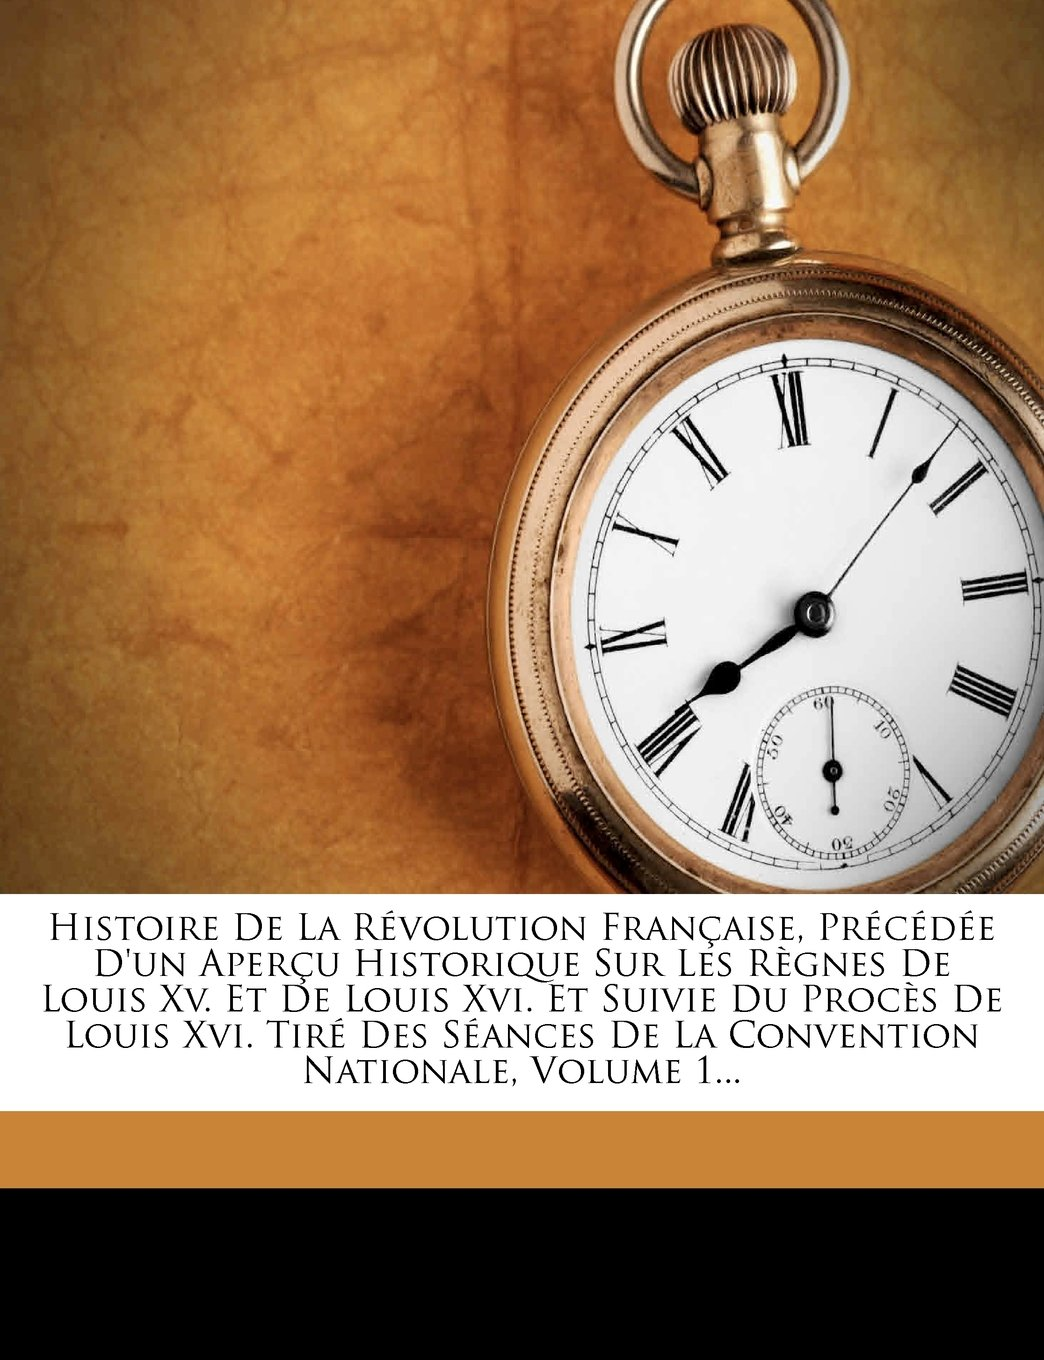 Download Histoire De La Révolution Française, Précédée D'un Aperçu Historique Sur Les Règnes De Louis Xv. Et De Louis Xvi. Et Suivie Du Procès De Louis Xvi. ... Nationale, Volume 1... (French Edition) pdf epub